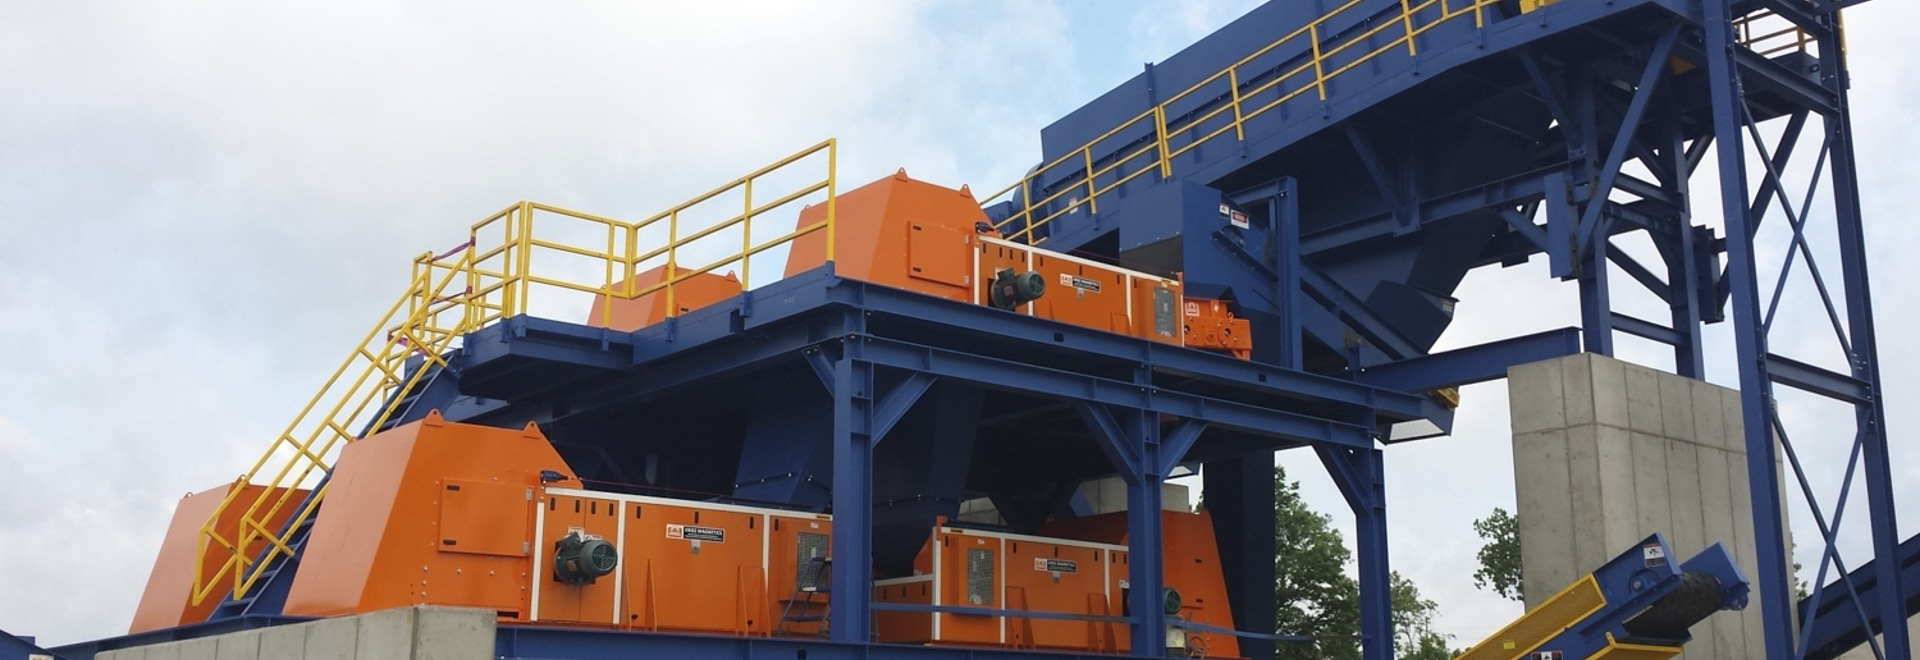 Installation of the RCS non-ferrous recovery system